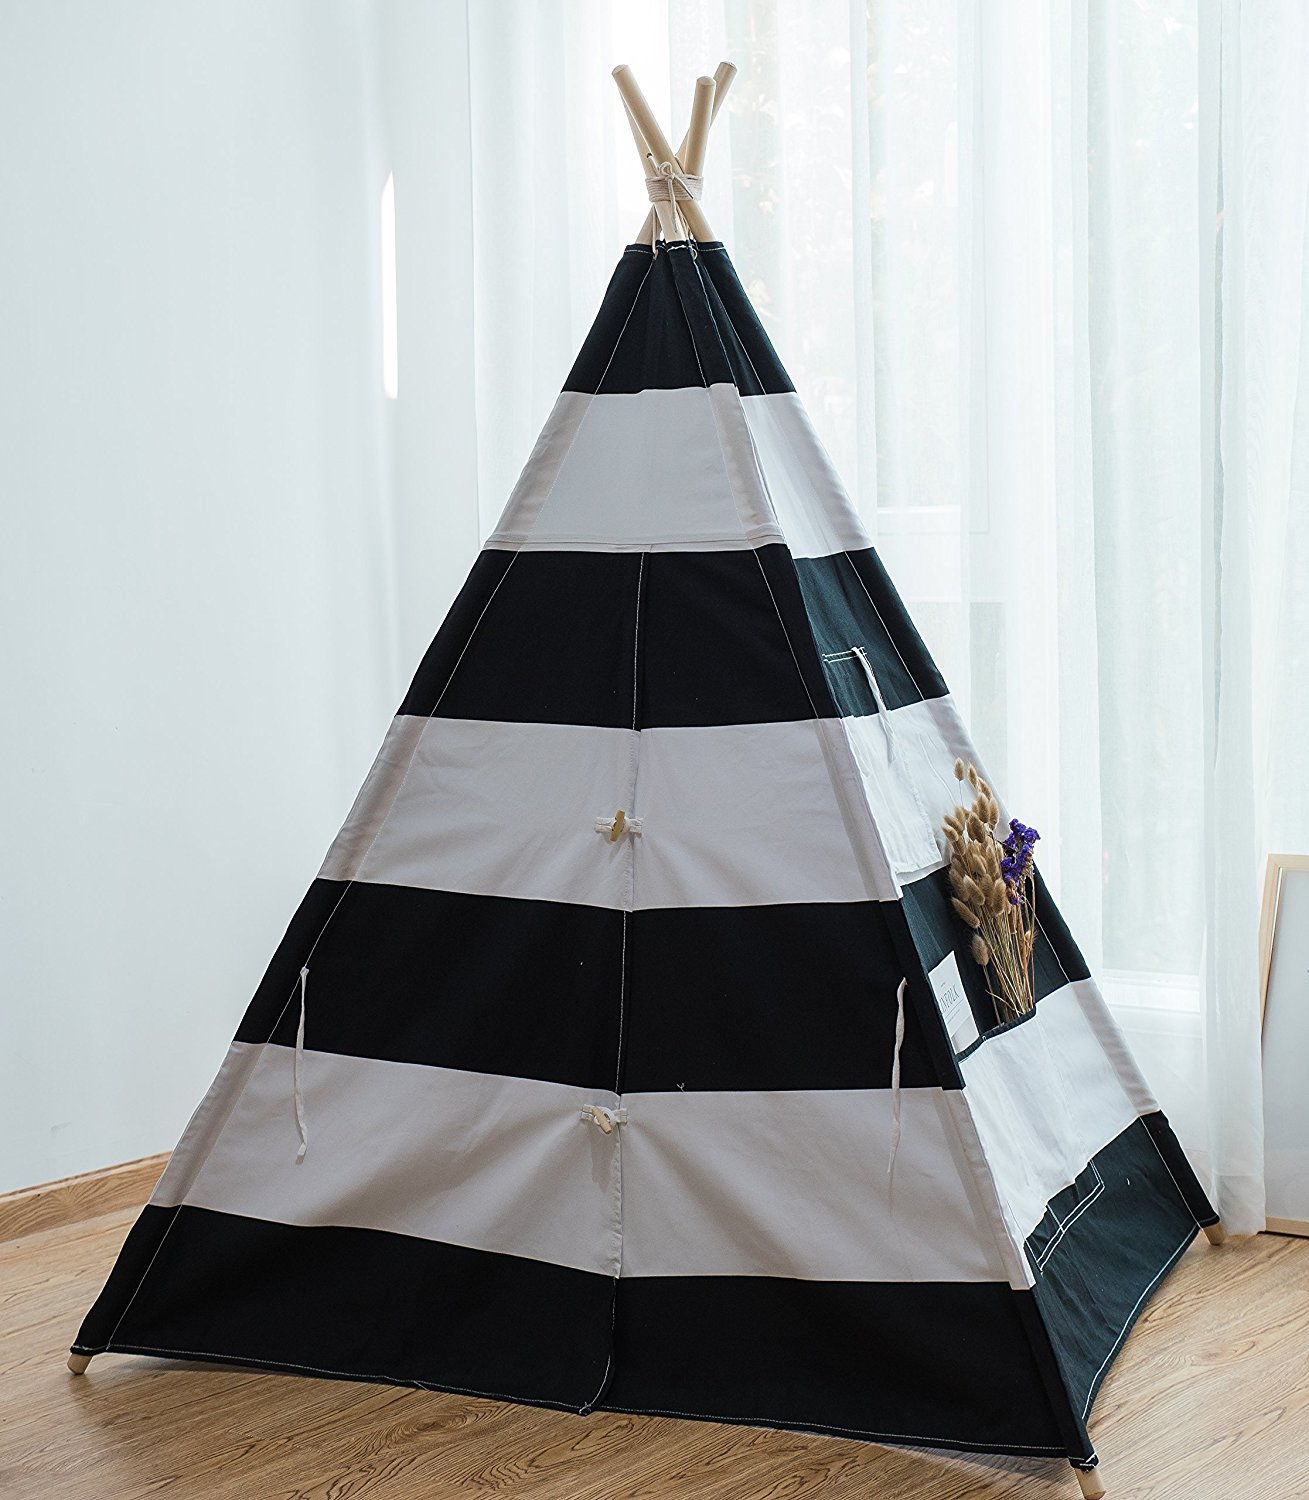 Pericross Kids Teepee Tent Indian Play Tent Childrenu0027s Playhouse For  Outdoor And Indoor Play